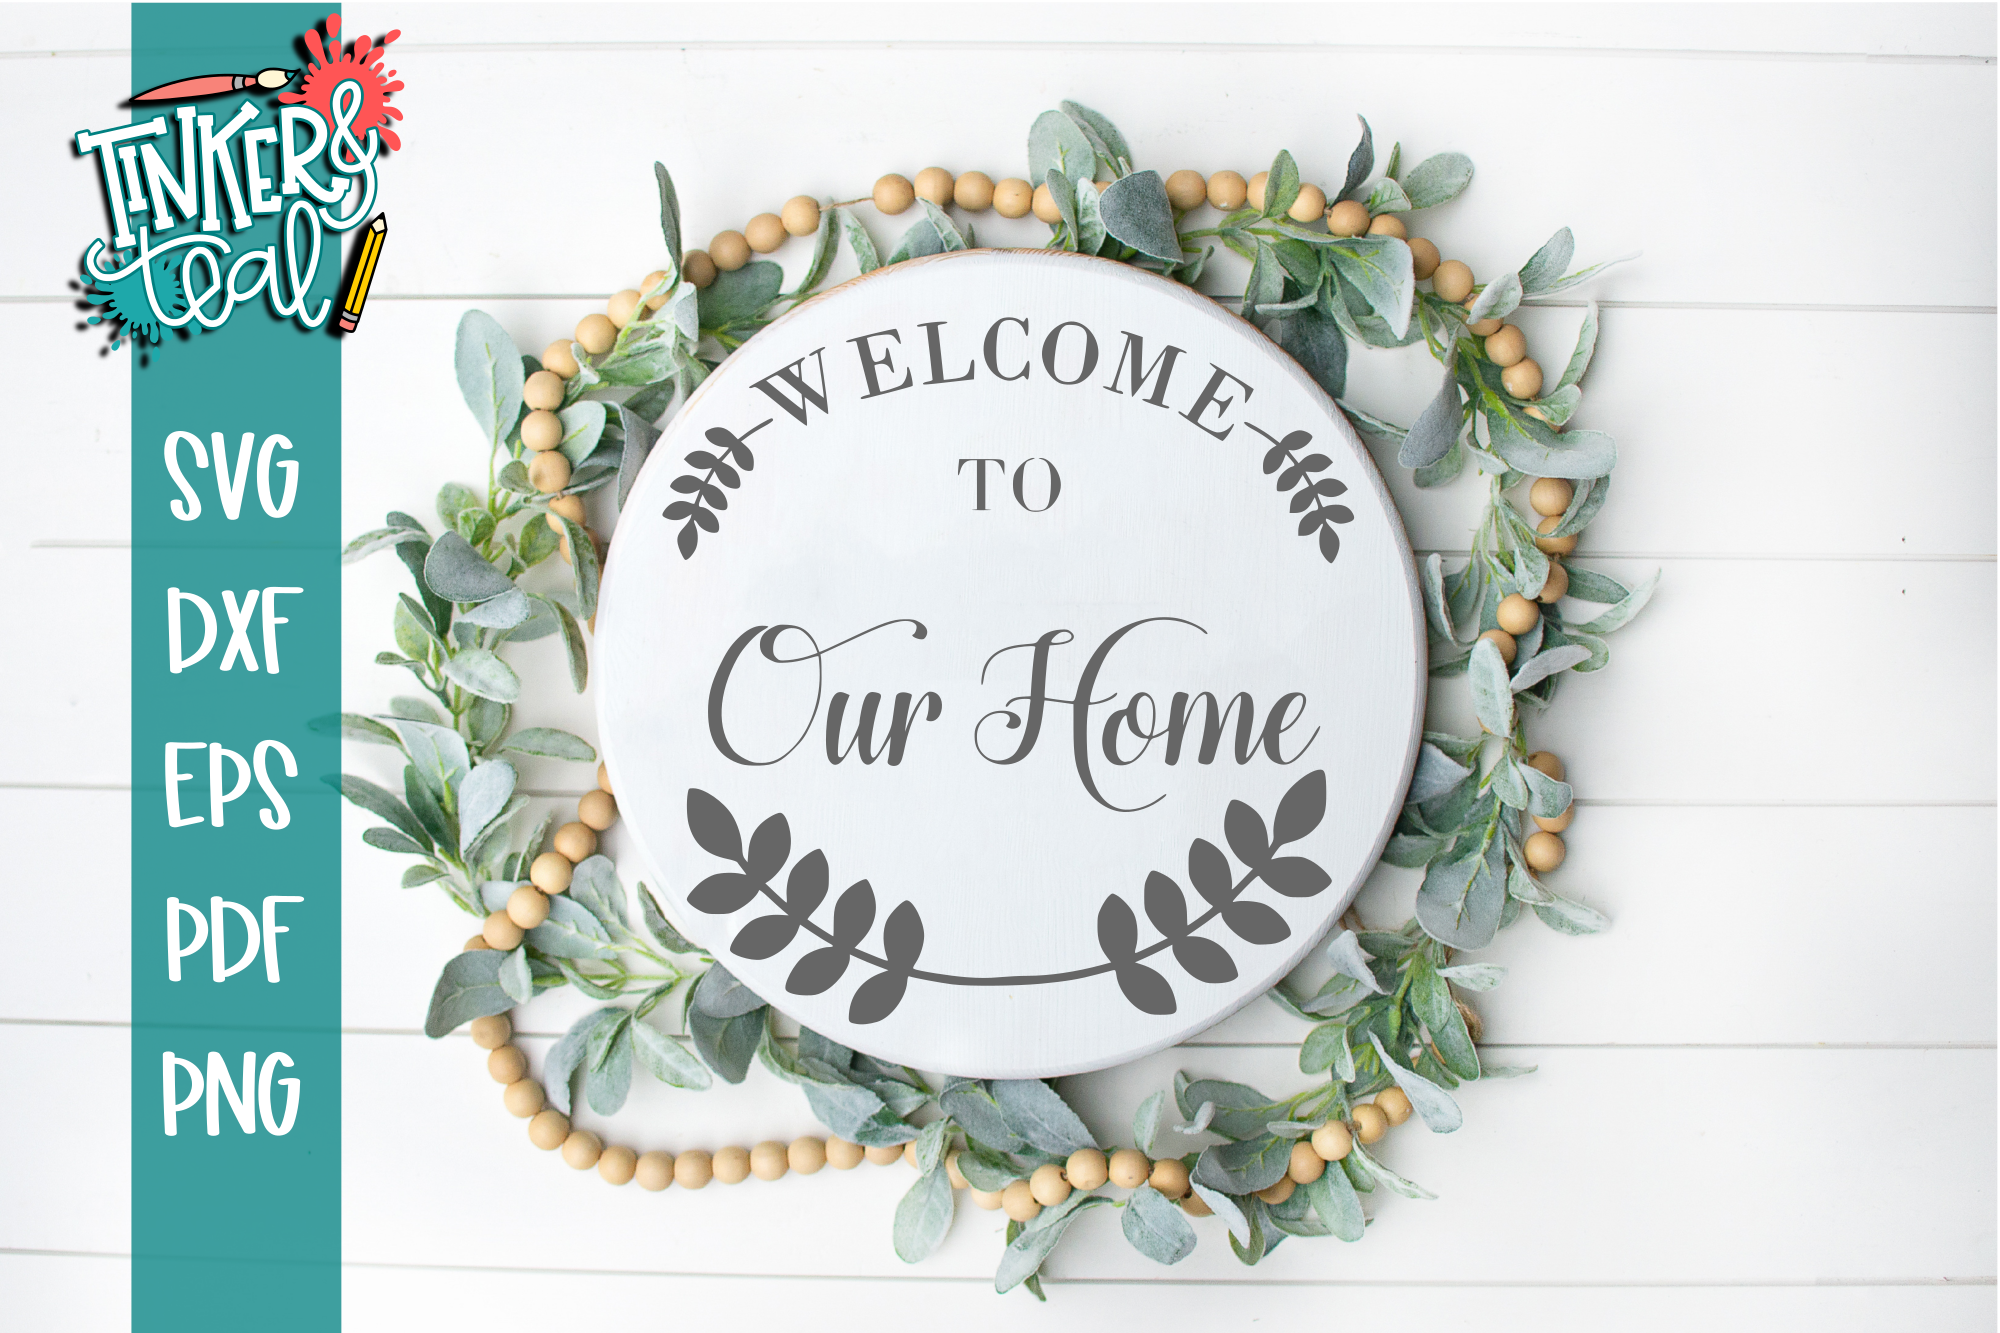 Farmhouse Welcome To Our Home Laurel SVG example image 1